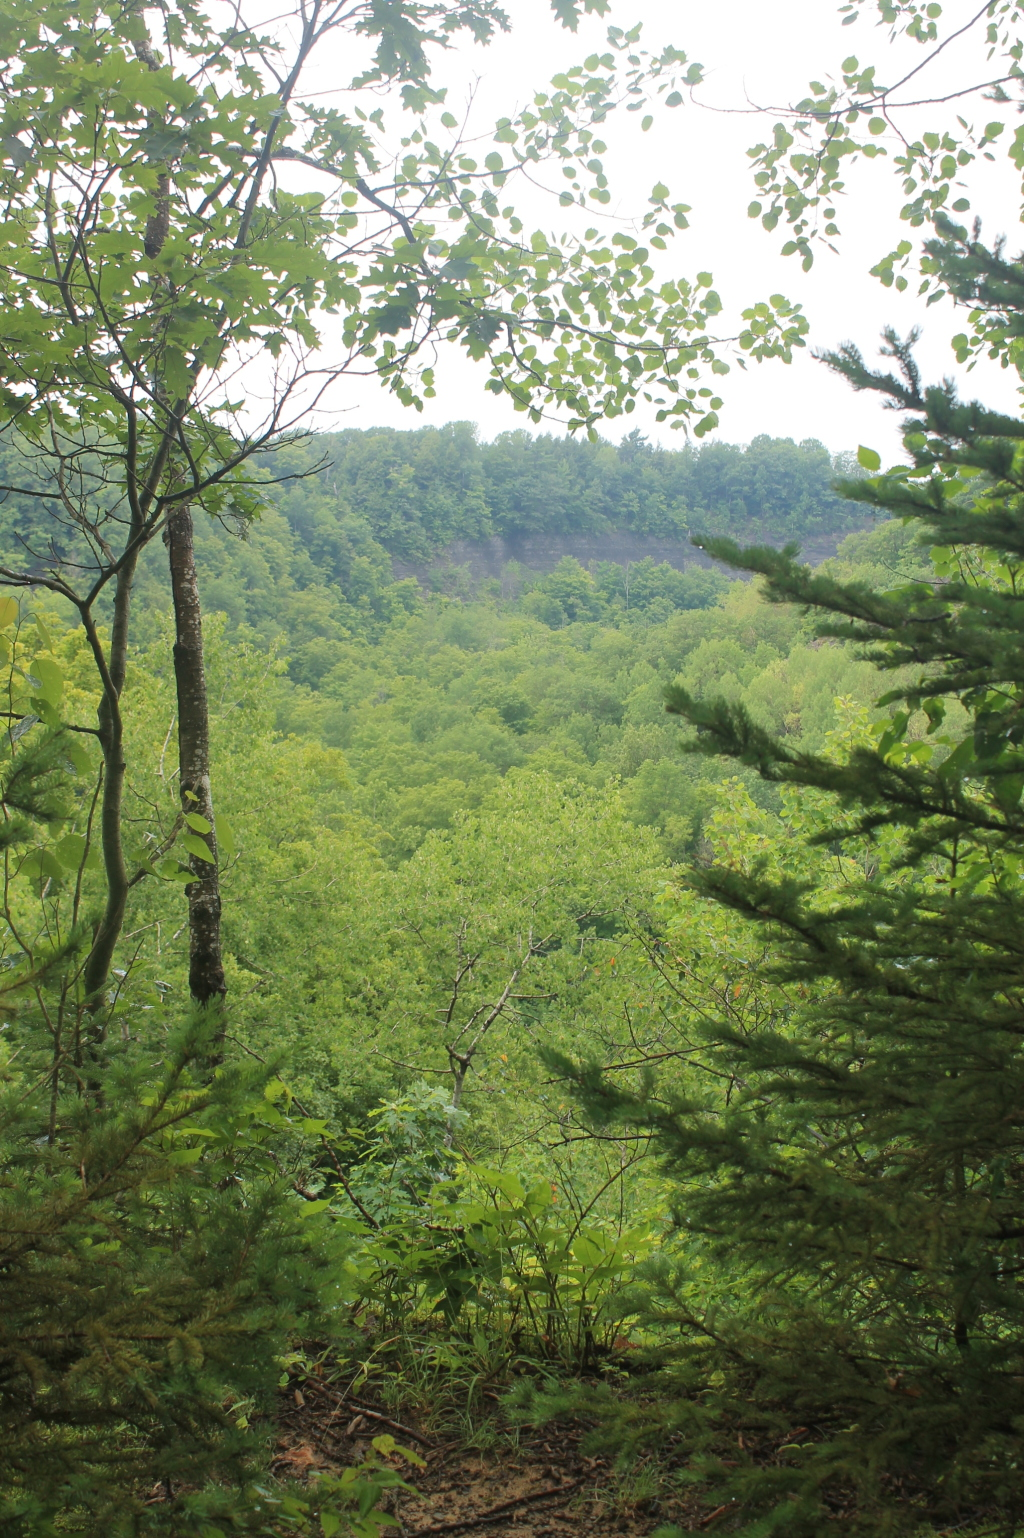 Photos: Tug Hill State Forest (Jul 2, 2013, Part A)